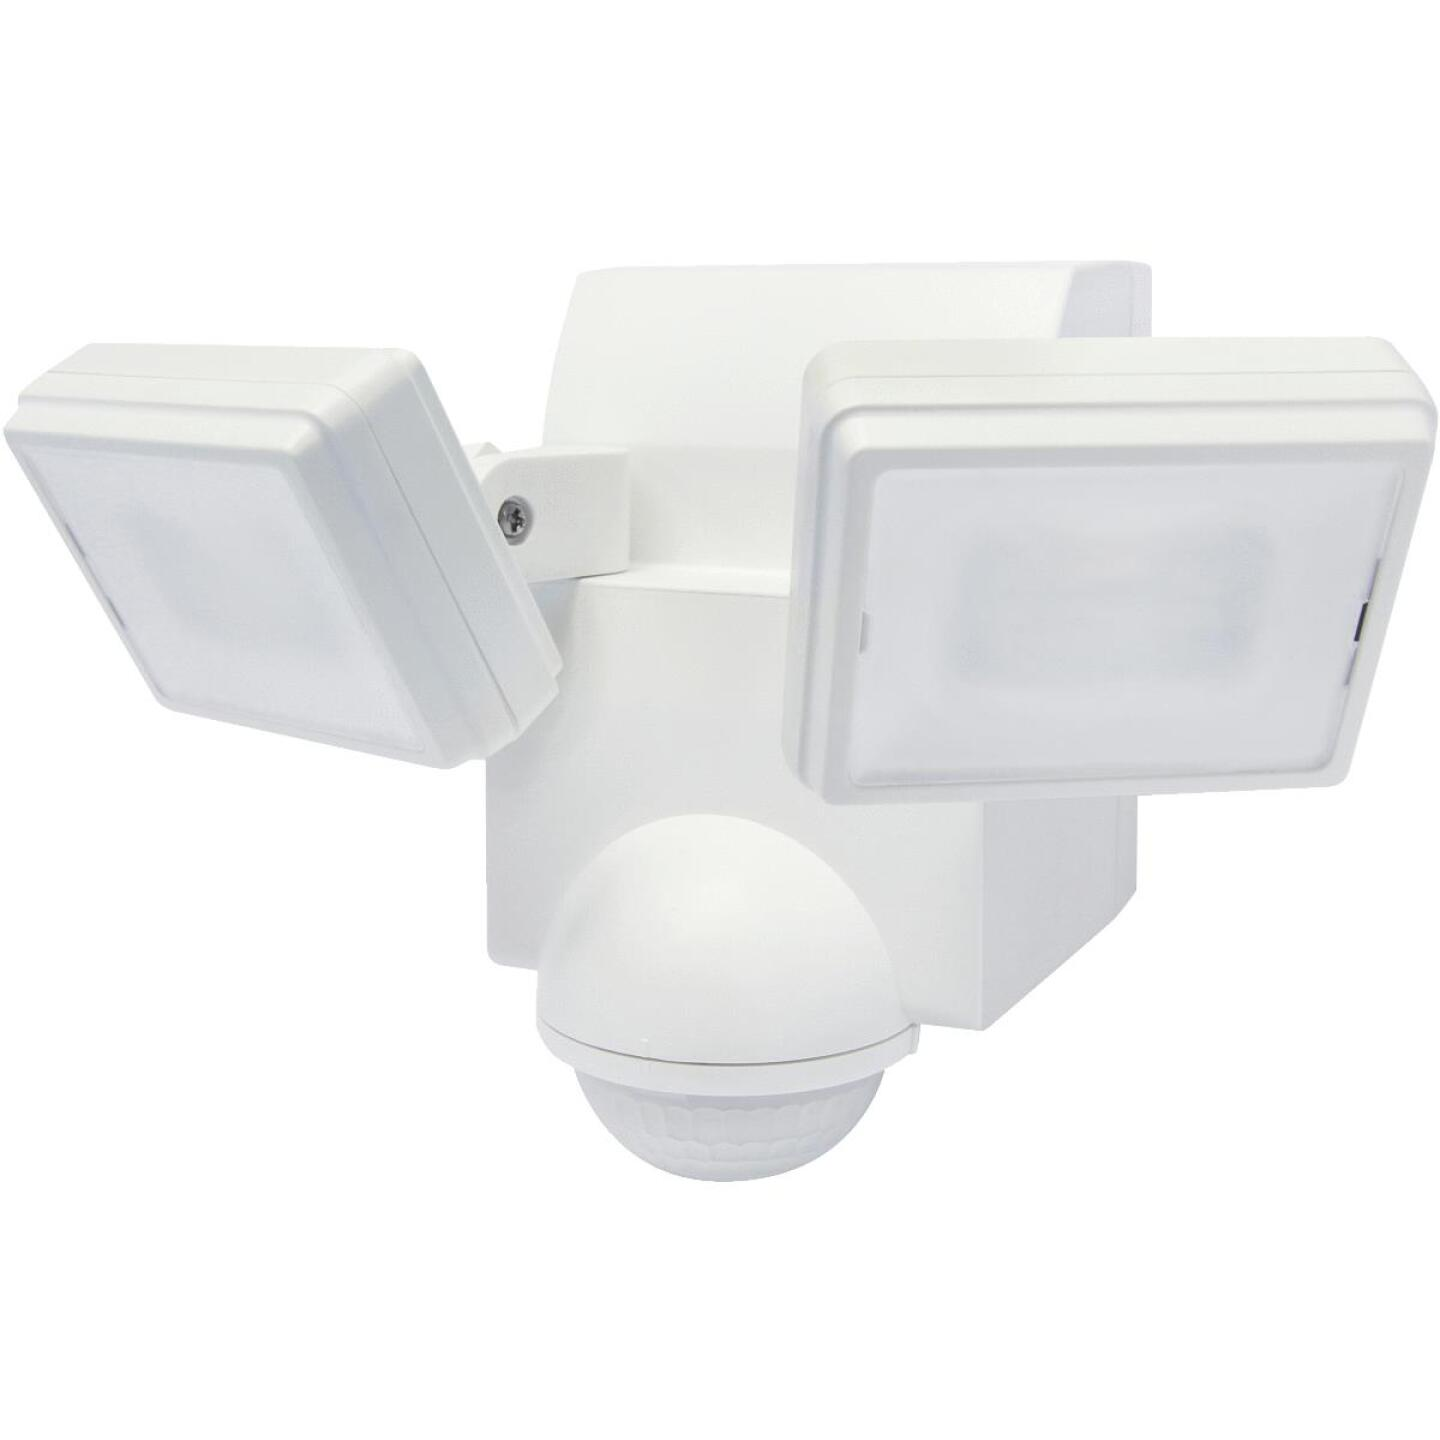 IQ America White 700 Lm. LED Battery Operated 2-Head Security Light Fixture Image 1